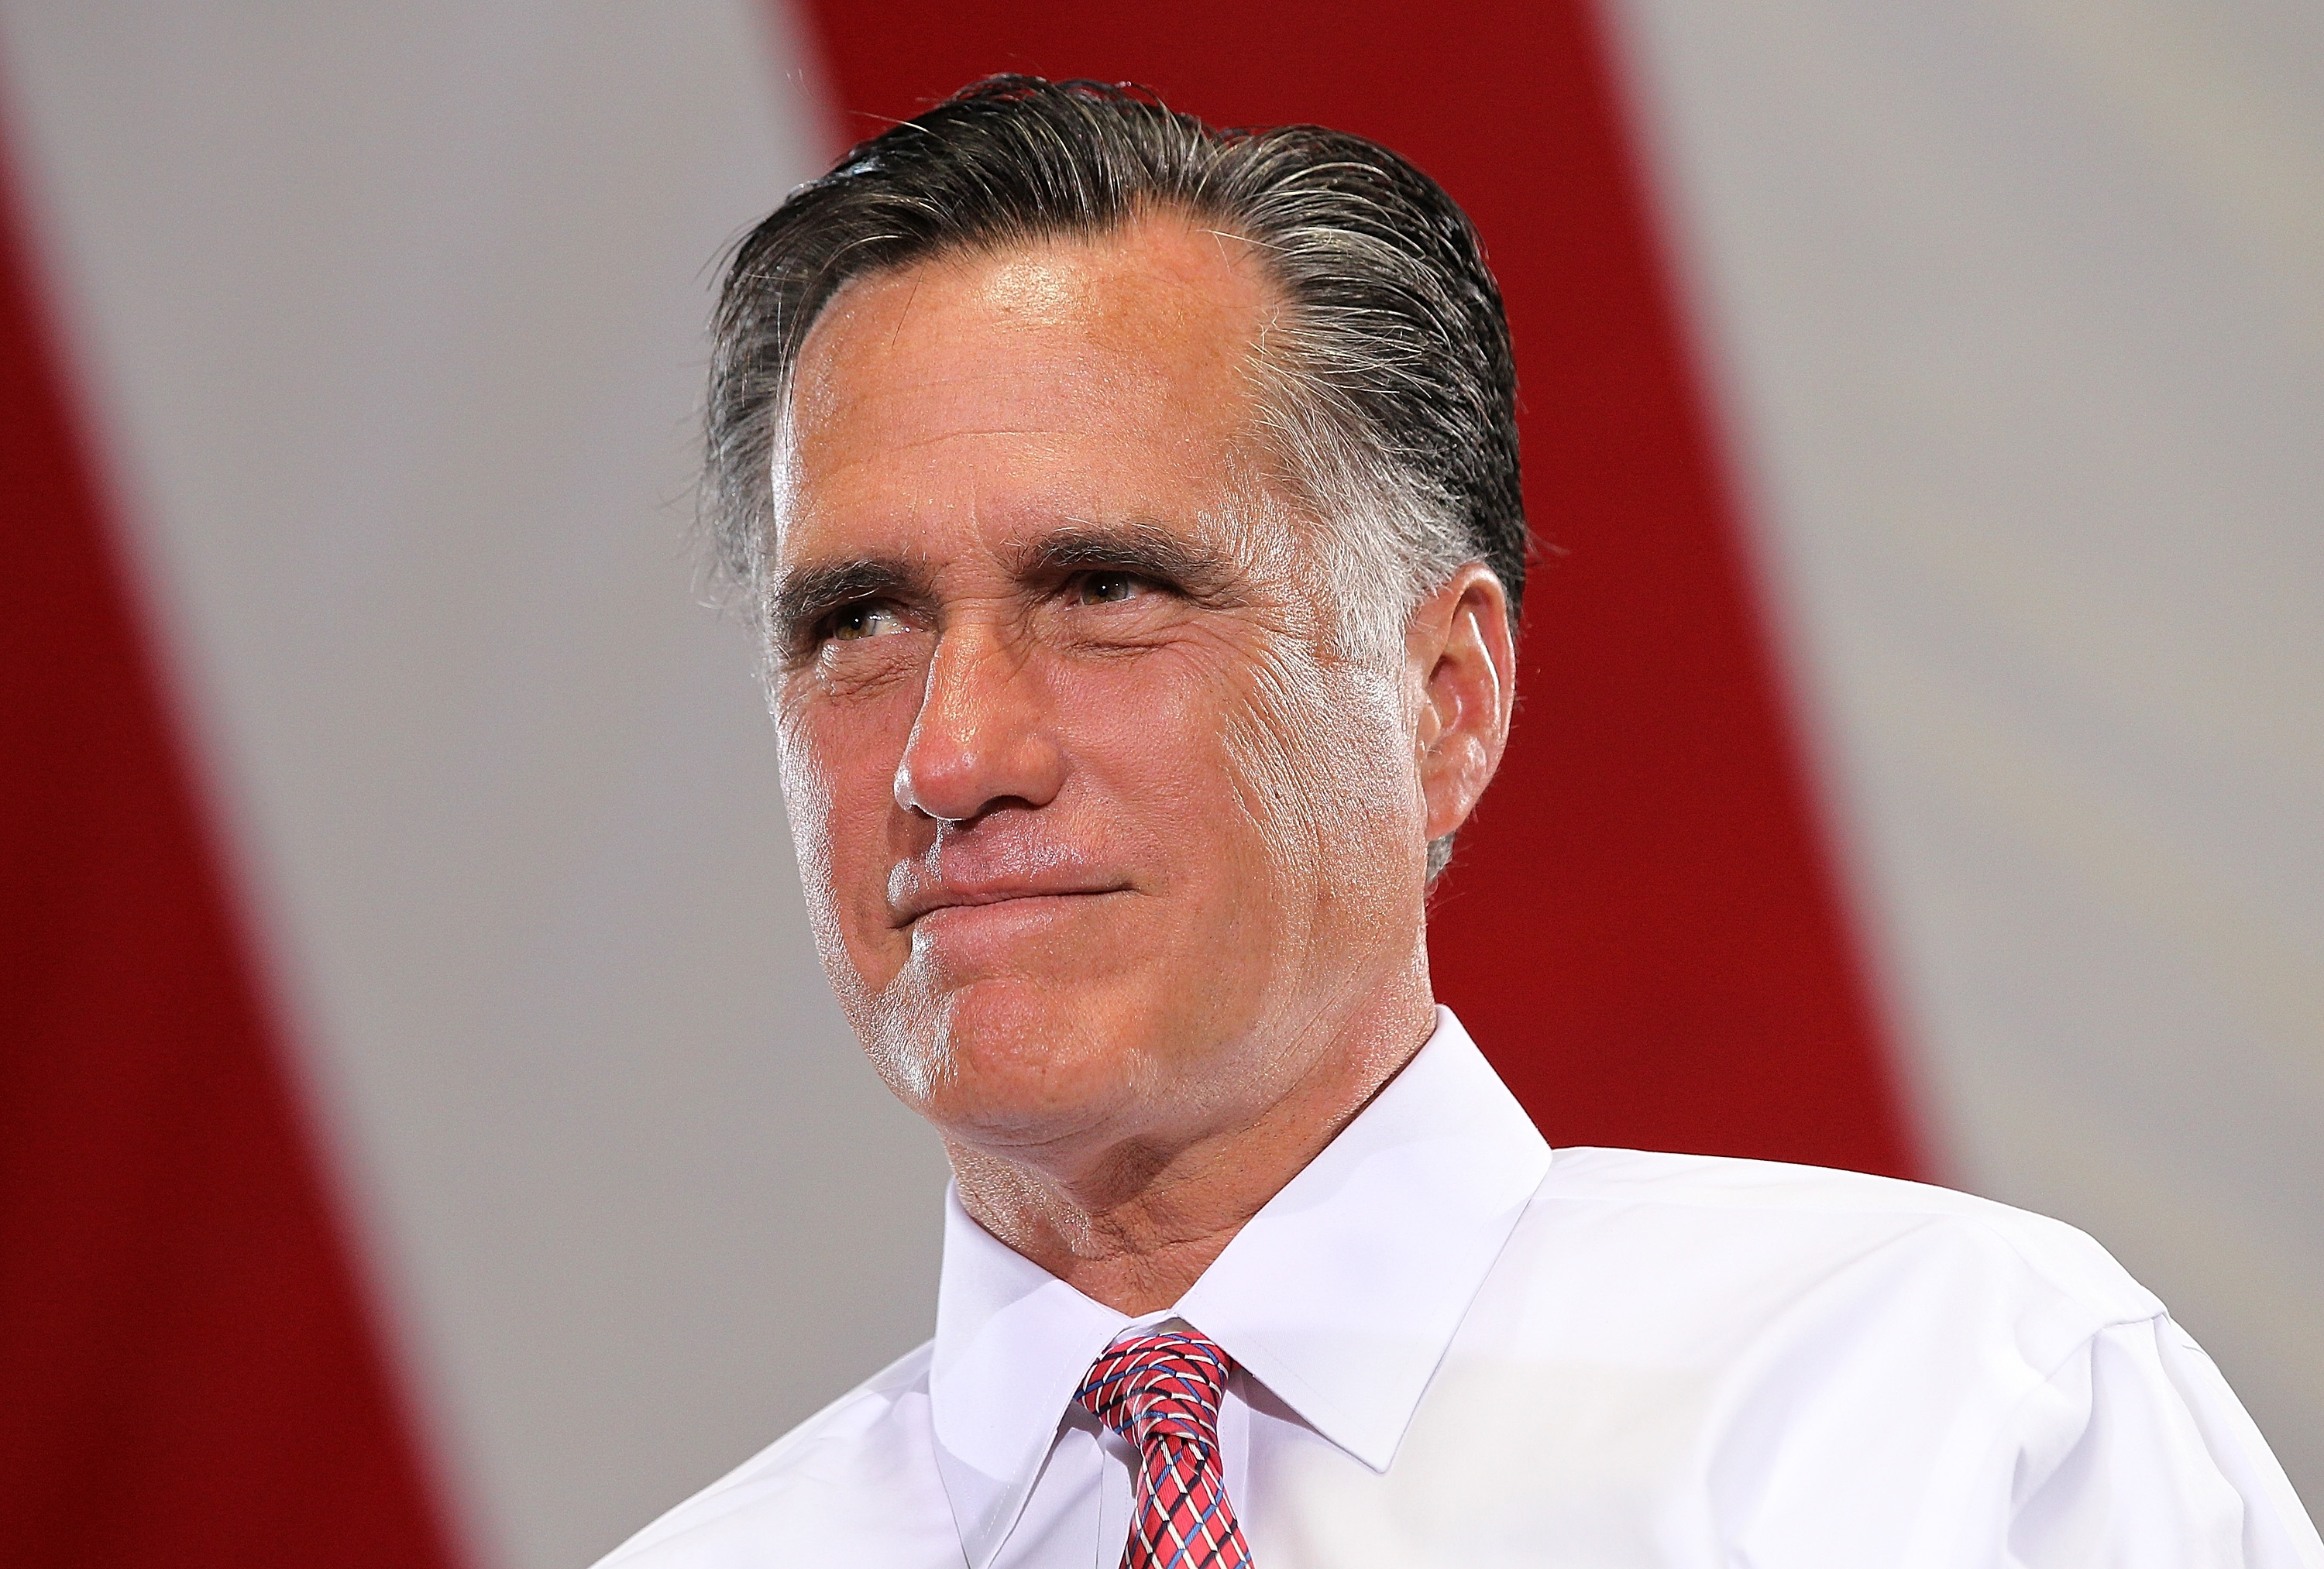 Avlon: Mitt Romney's Stockholm Syndrome Behavior